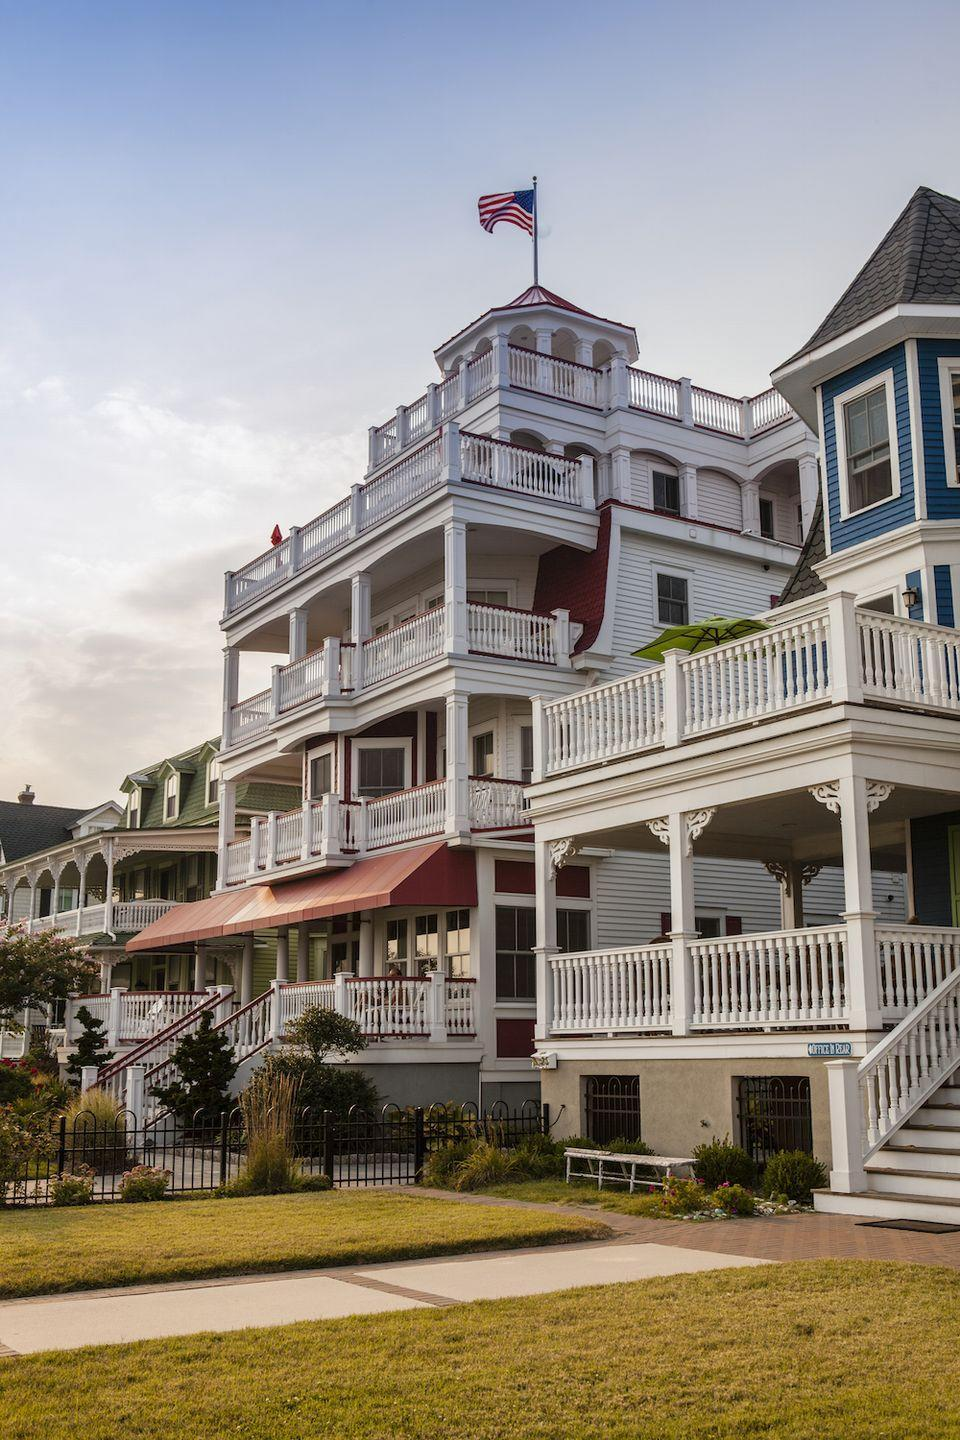 "<p>The southernmost beach town along New Jersey's shore, <a href=""http://www.visitnj.org/city/cape-may"" rel=""nofollow noopener"" target=""_blank"" data-ylk=""slk:Cape May"" class=""link rapid-noclick-resp"">Cape May</a> has a distinctly different feel than other towns: It's elegant yet offers a lot of options for a great night (or day) out. Tour the area vineyards, indulge in fine dining, or just enjoy the Victorian architecture while taking a stroll. </p><p><a href=""https://www.housebeautiful.com/lifestyle/g4449/best-hotels-in-the-world/"" rel=""nofollow noopener"" target=""_blank"" data-ylk=""slk:See the Cape May hotel that's one of the best in the world »"" class=""link rapid-noclick-resp""><em>See the Cape May hotel that's one of the best in the world »</em></a></p>"